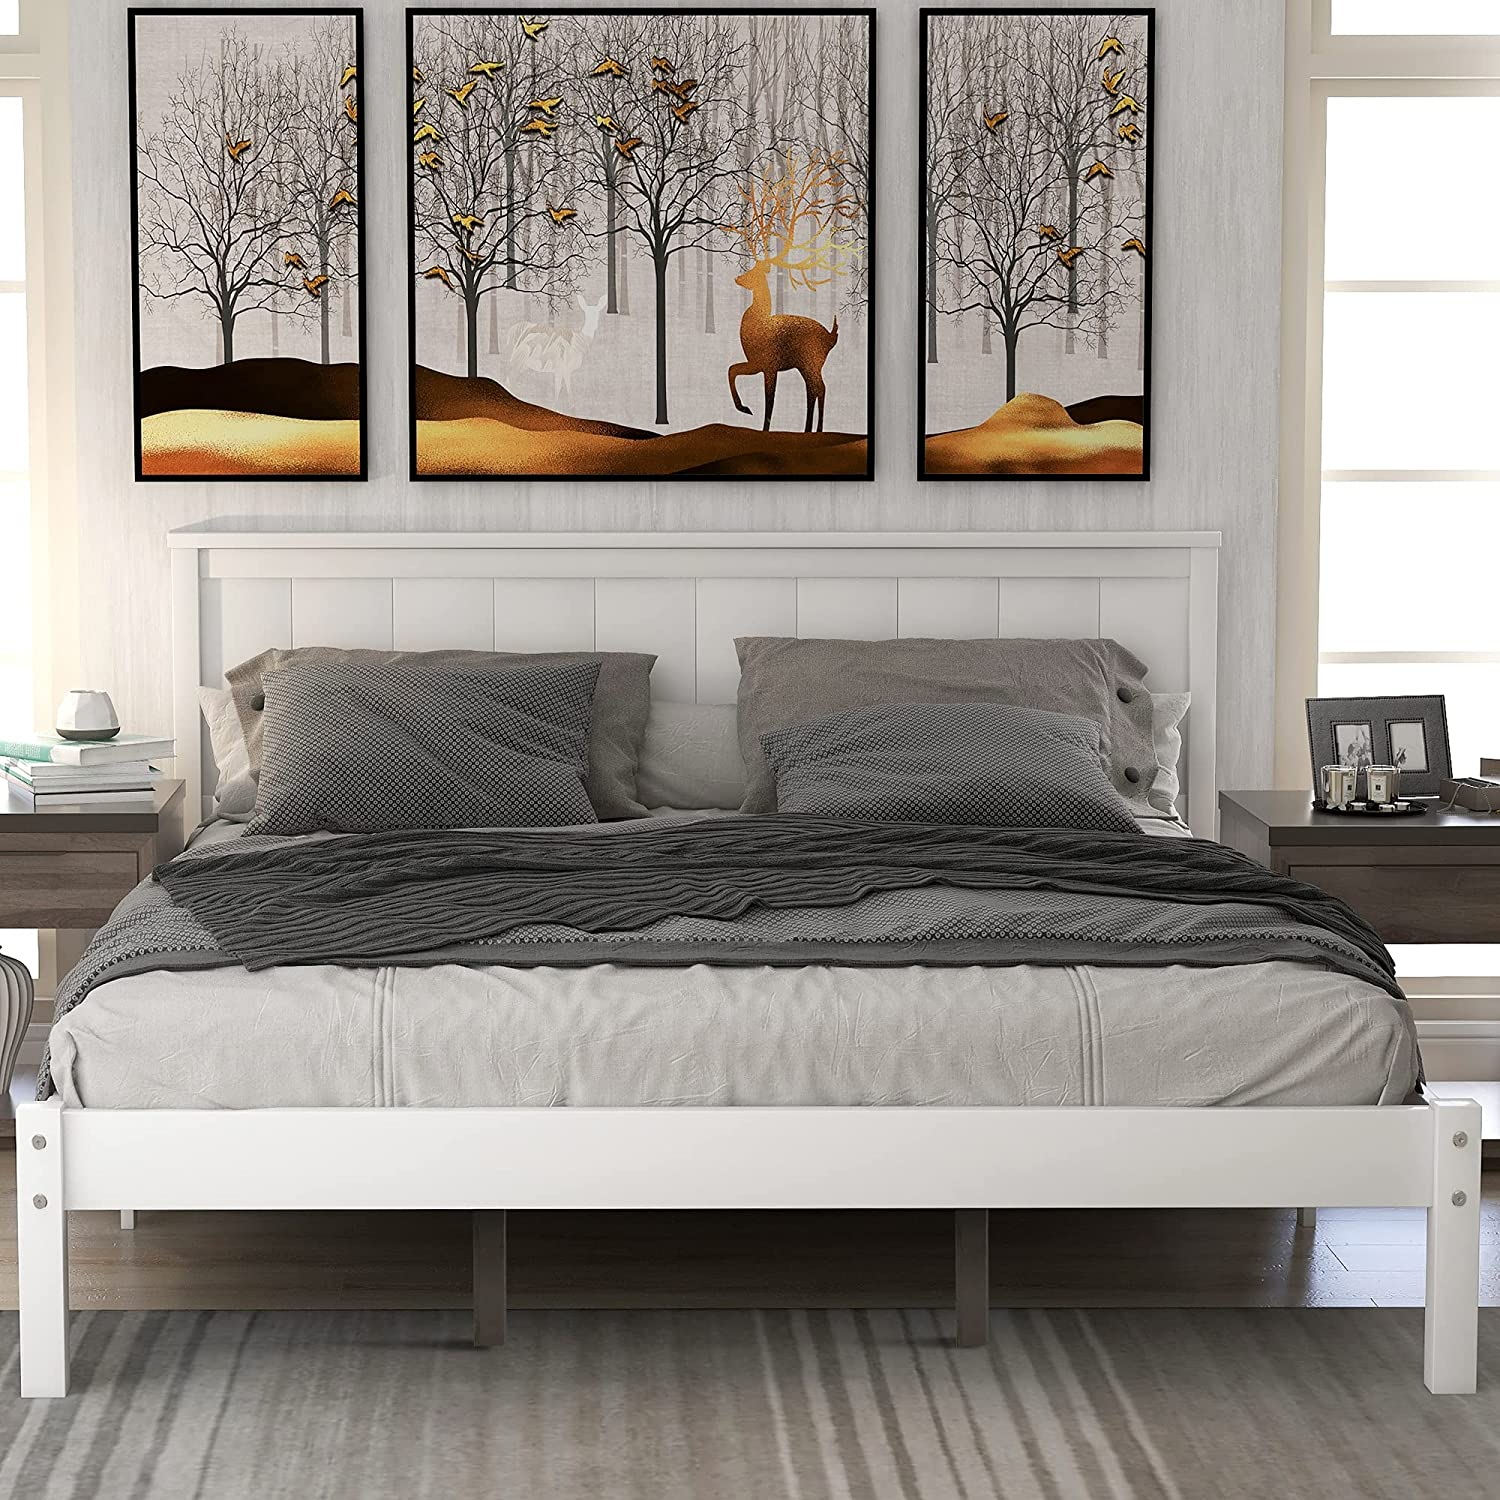 P PURLOVE Queen Size Platform Bed Headboard Wood Year-end gift with Pla 70% OFF Outlet Frame